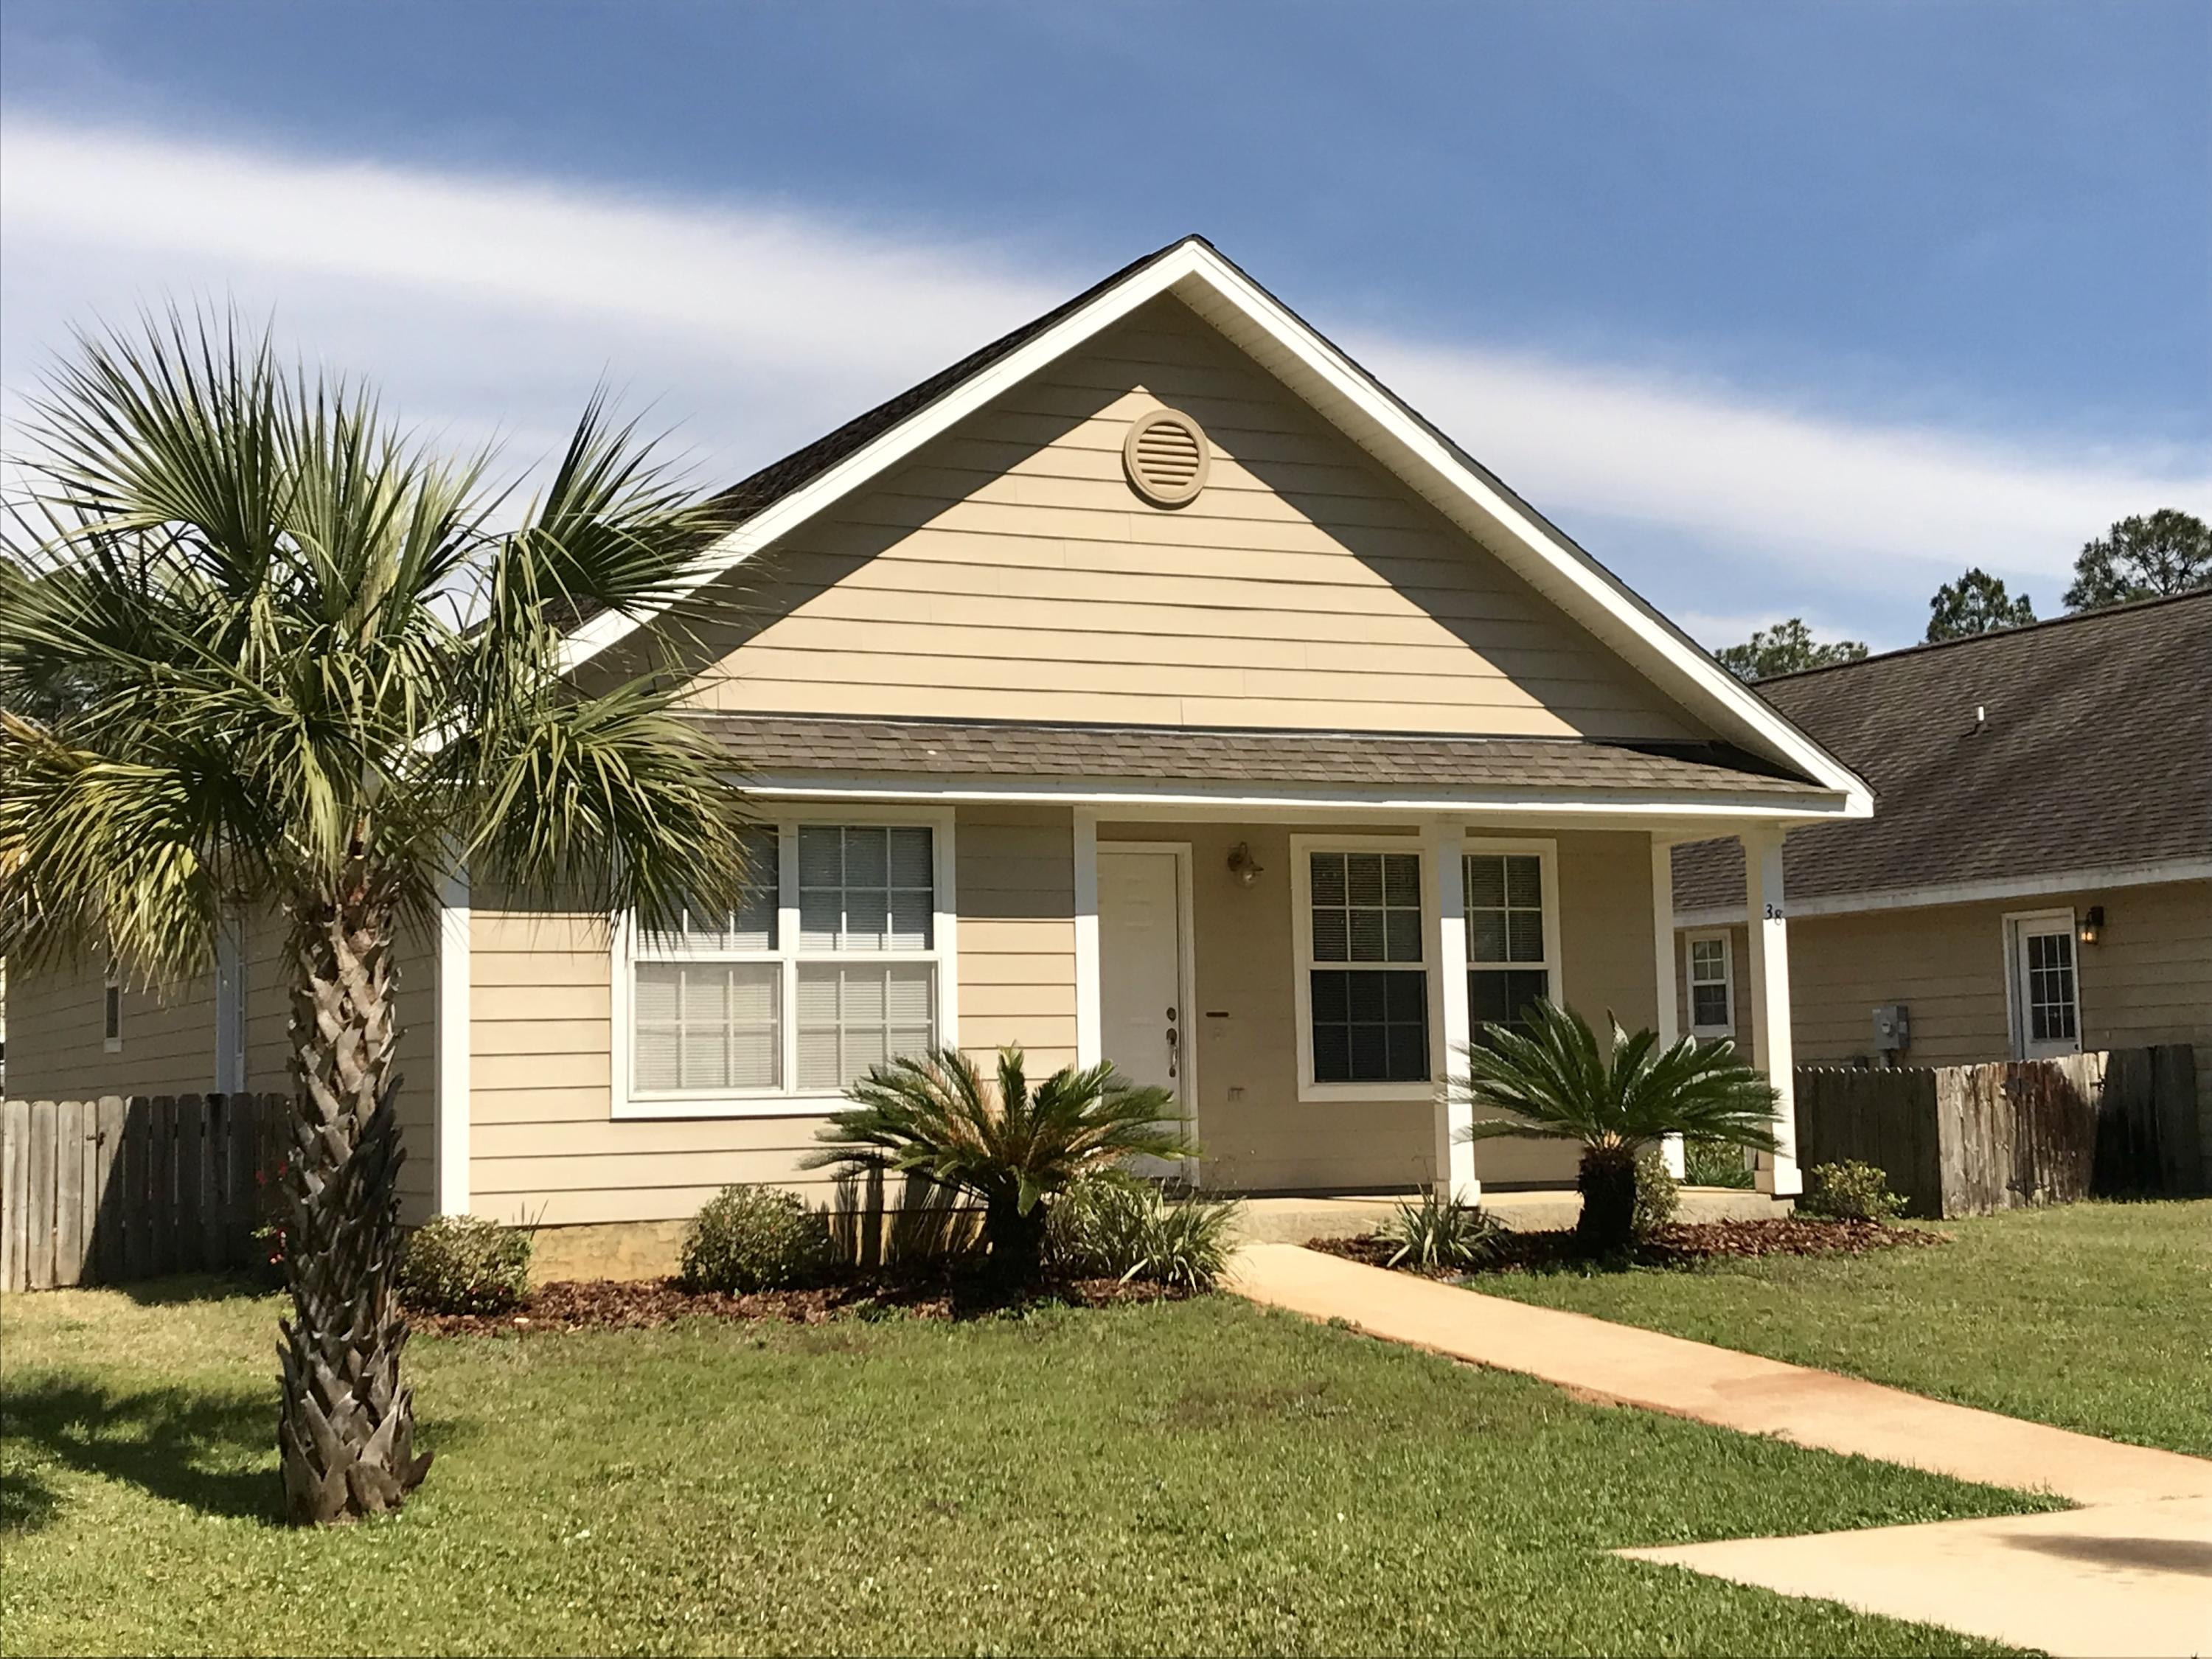 ***72 Hr First Right of Refusal In Place***MAJOR PRICE REDUCTION * AS-IS *  CALLING INVESTORS/1ST TIME HOME BUYERS!  CLOSING BEFORE 7/31/19***Super cute Florida style cottage just 10 minutes from the beautiful beaches of South Walton.  Easy living, low maintenance exterior with a great open floor plan.  Kitchen  features stainless appliances and breakfast bar. You'll appreciate the oversized laundry room for additional storage.  Nice size bedrooms with spacious closets.  Master bedroom includes 2 closets (one is a large walk-in), master bath features double vanity, private toilet closet and shower/tub combination.  Fenced back yard with spacious storage shed.  Don't wait, own your home for less than most rent.